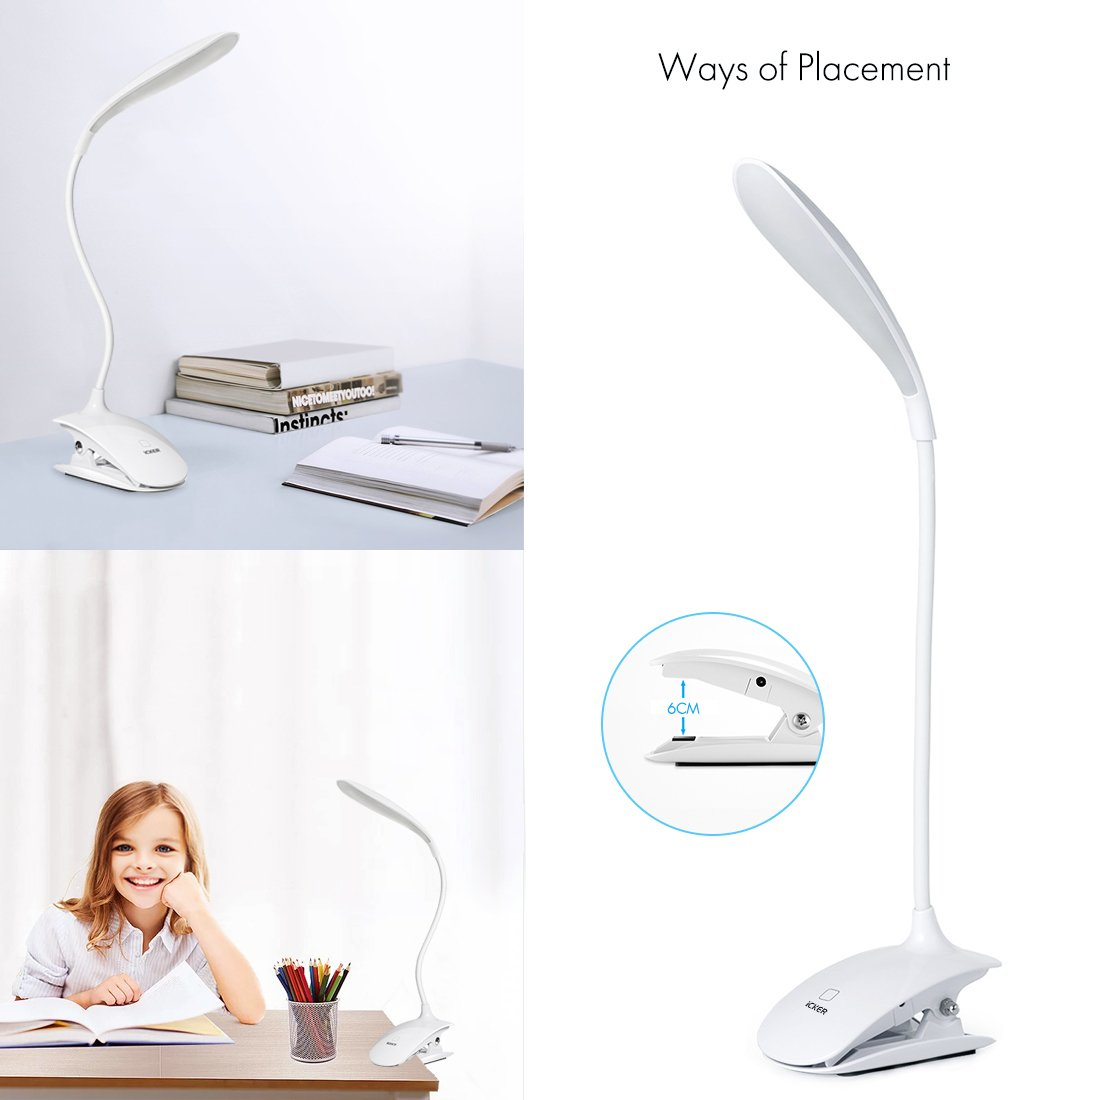 iCKER Desk Lamp with 16 LEDs, Clip on Reading Light for Books in Bed, 3 Levels Brightness, USB Rechargeable, 360° Flexible Gooseneck, Adapter Included by iCKER (Image #6)